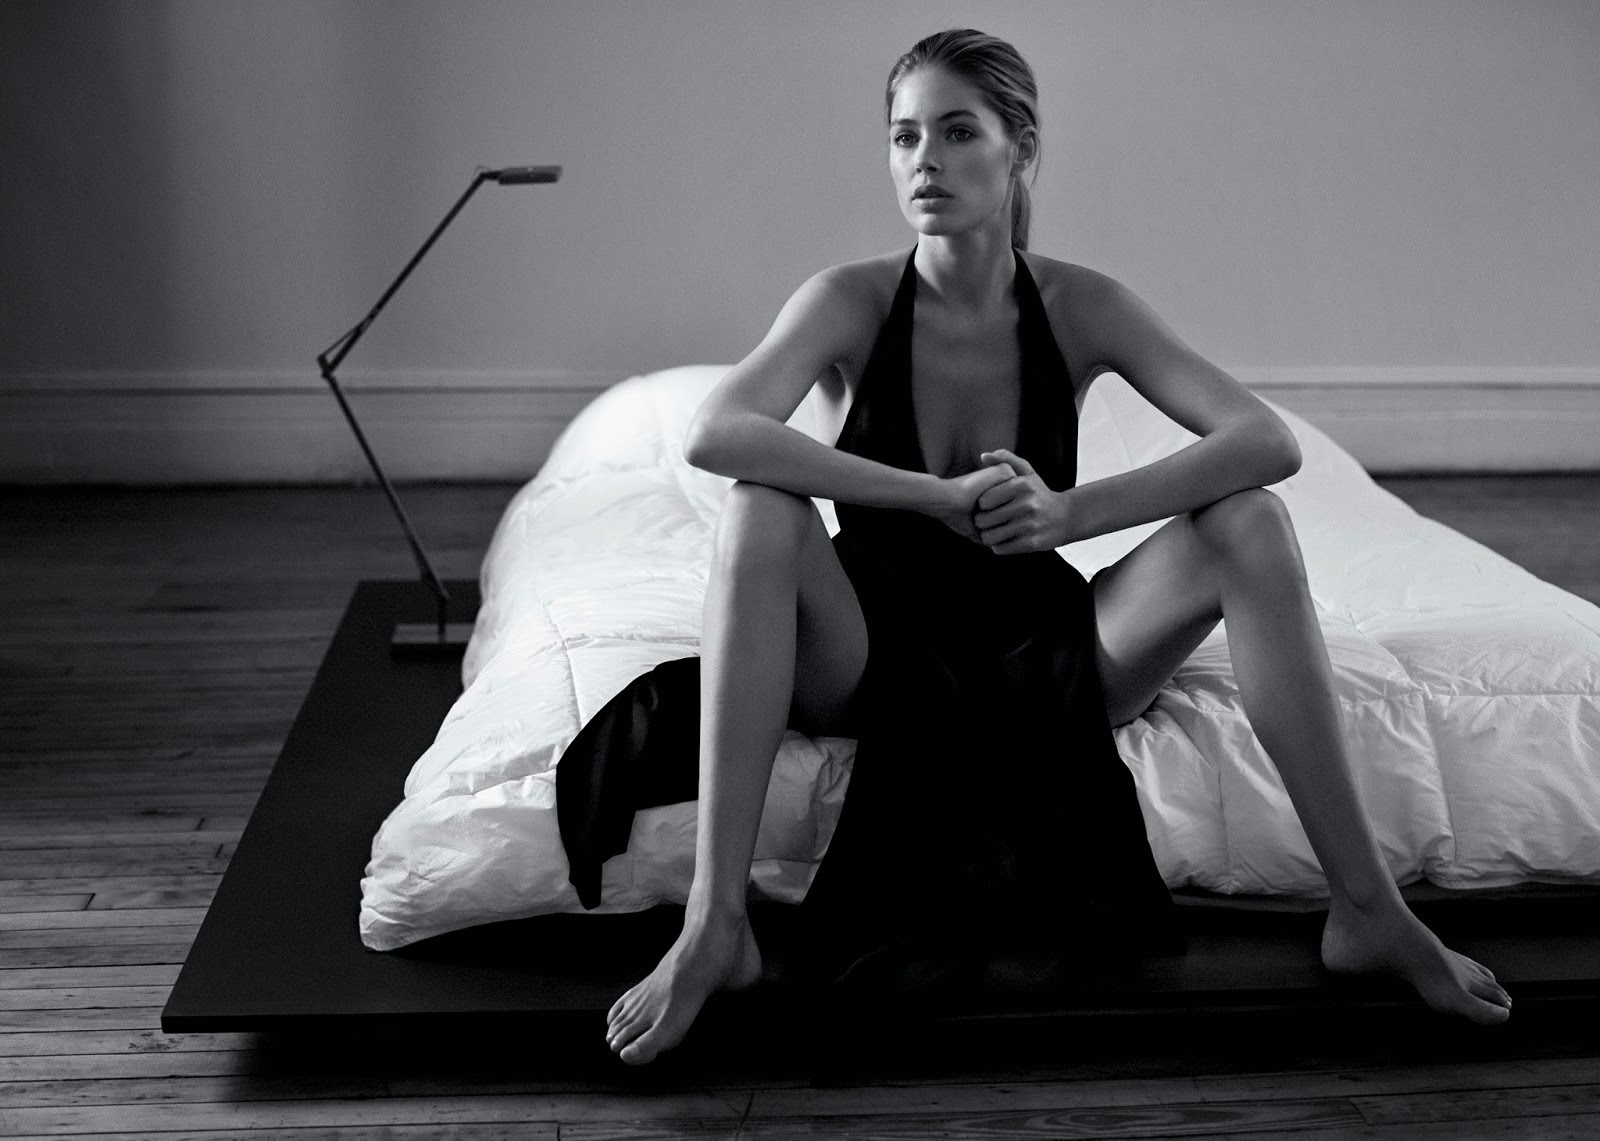 doutzen kroes by josh olins for wsj march 2015